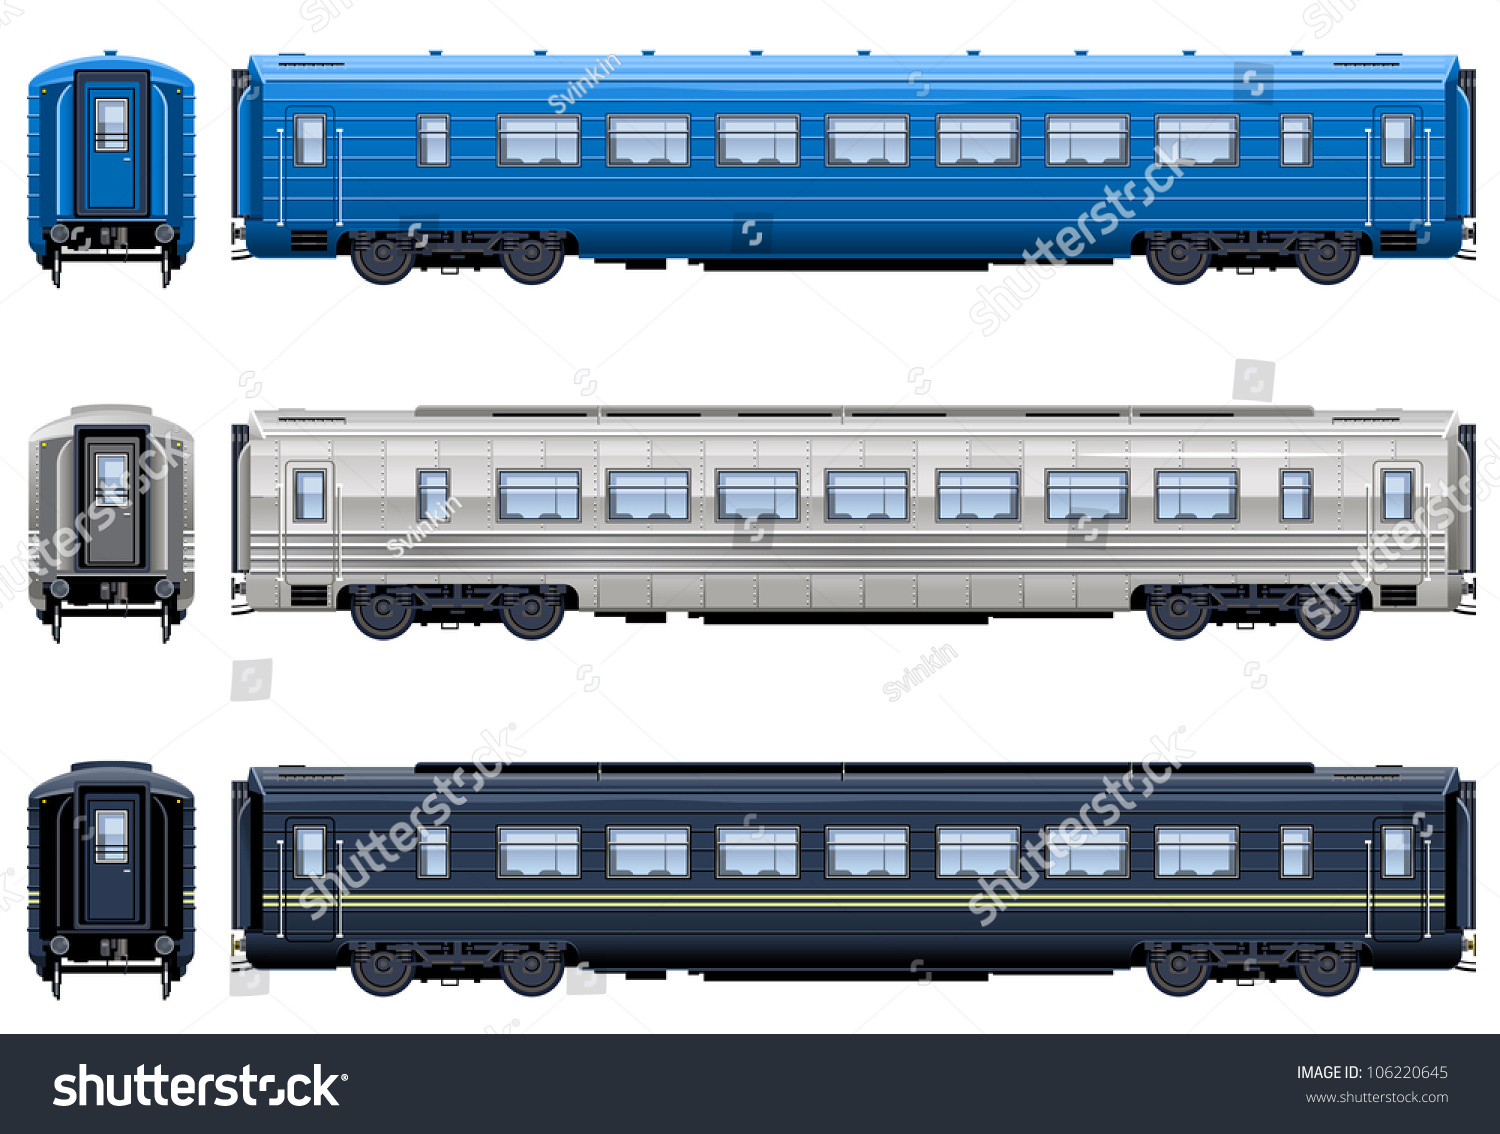 express train coach train 8 pixel stock vector 106220645 shutterstock. Black Bedroom Furniture Sets. Home Design Ideas